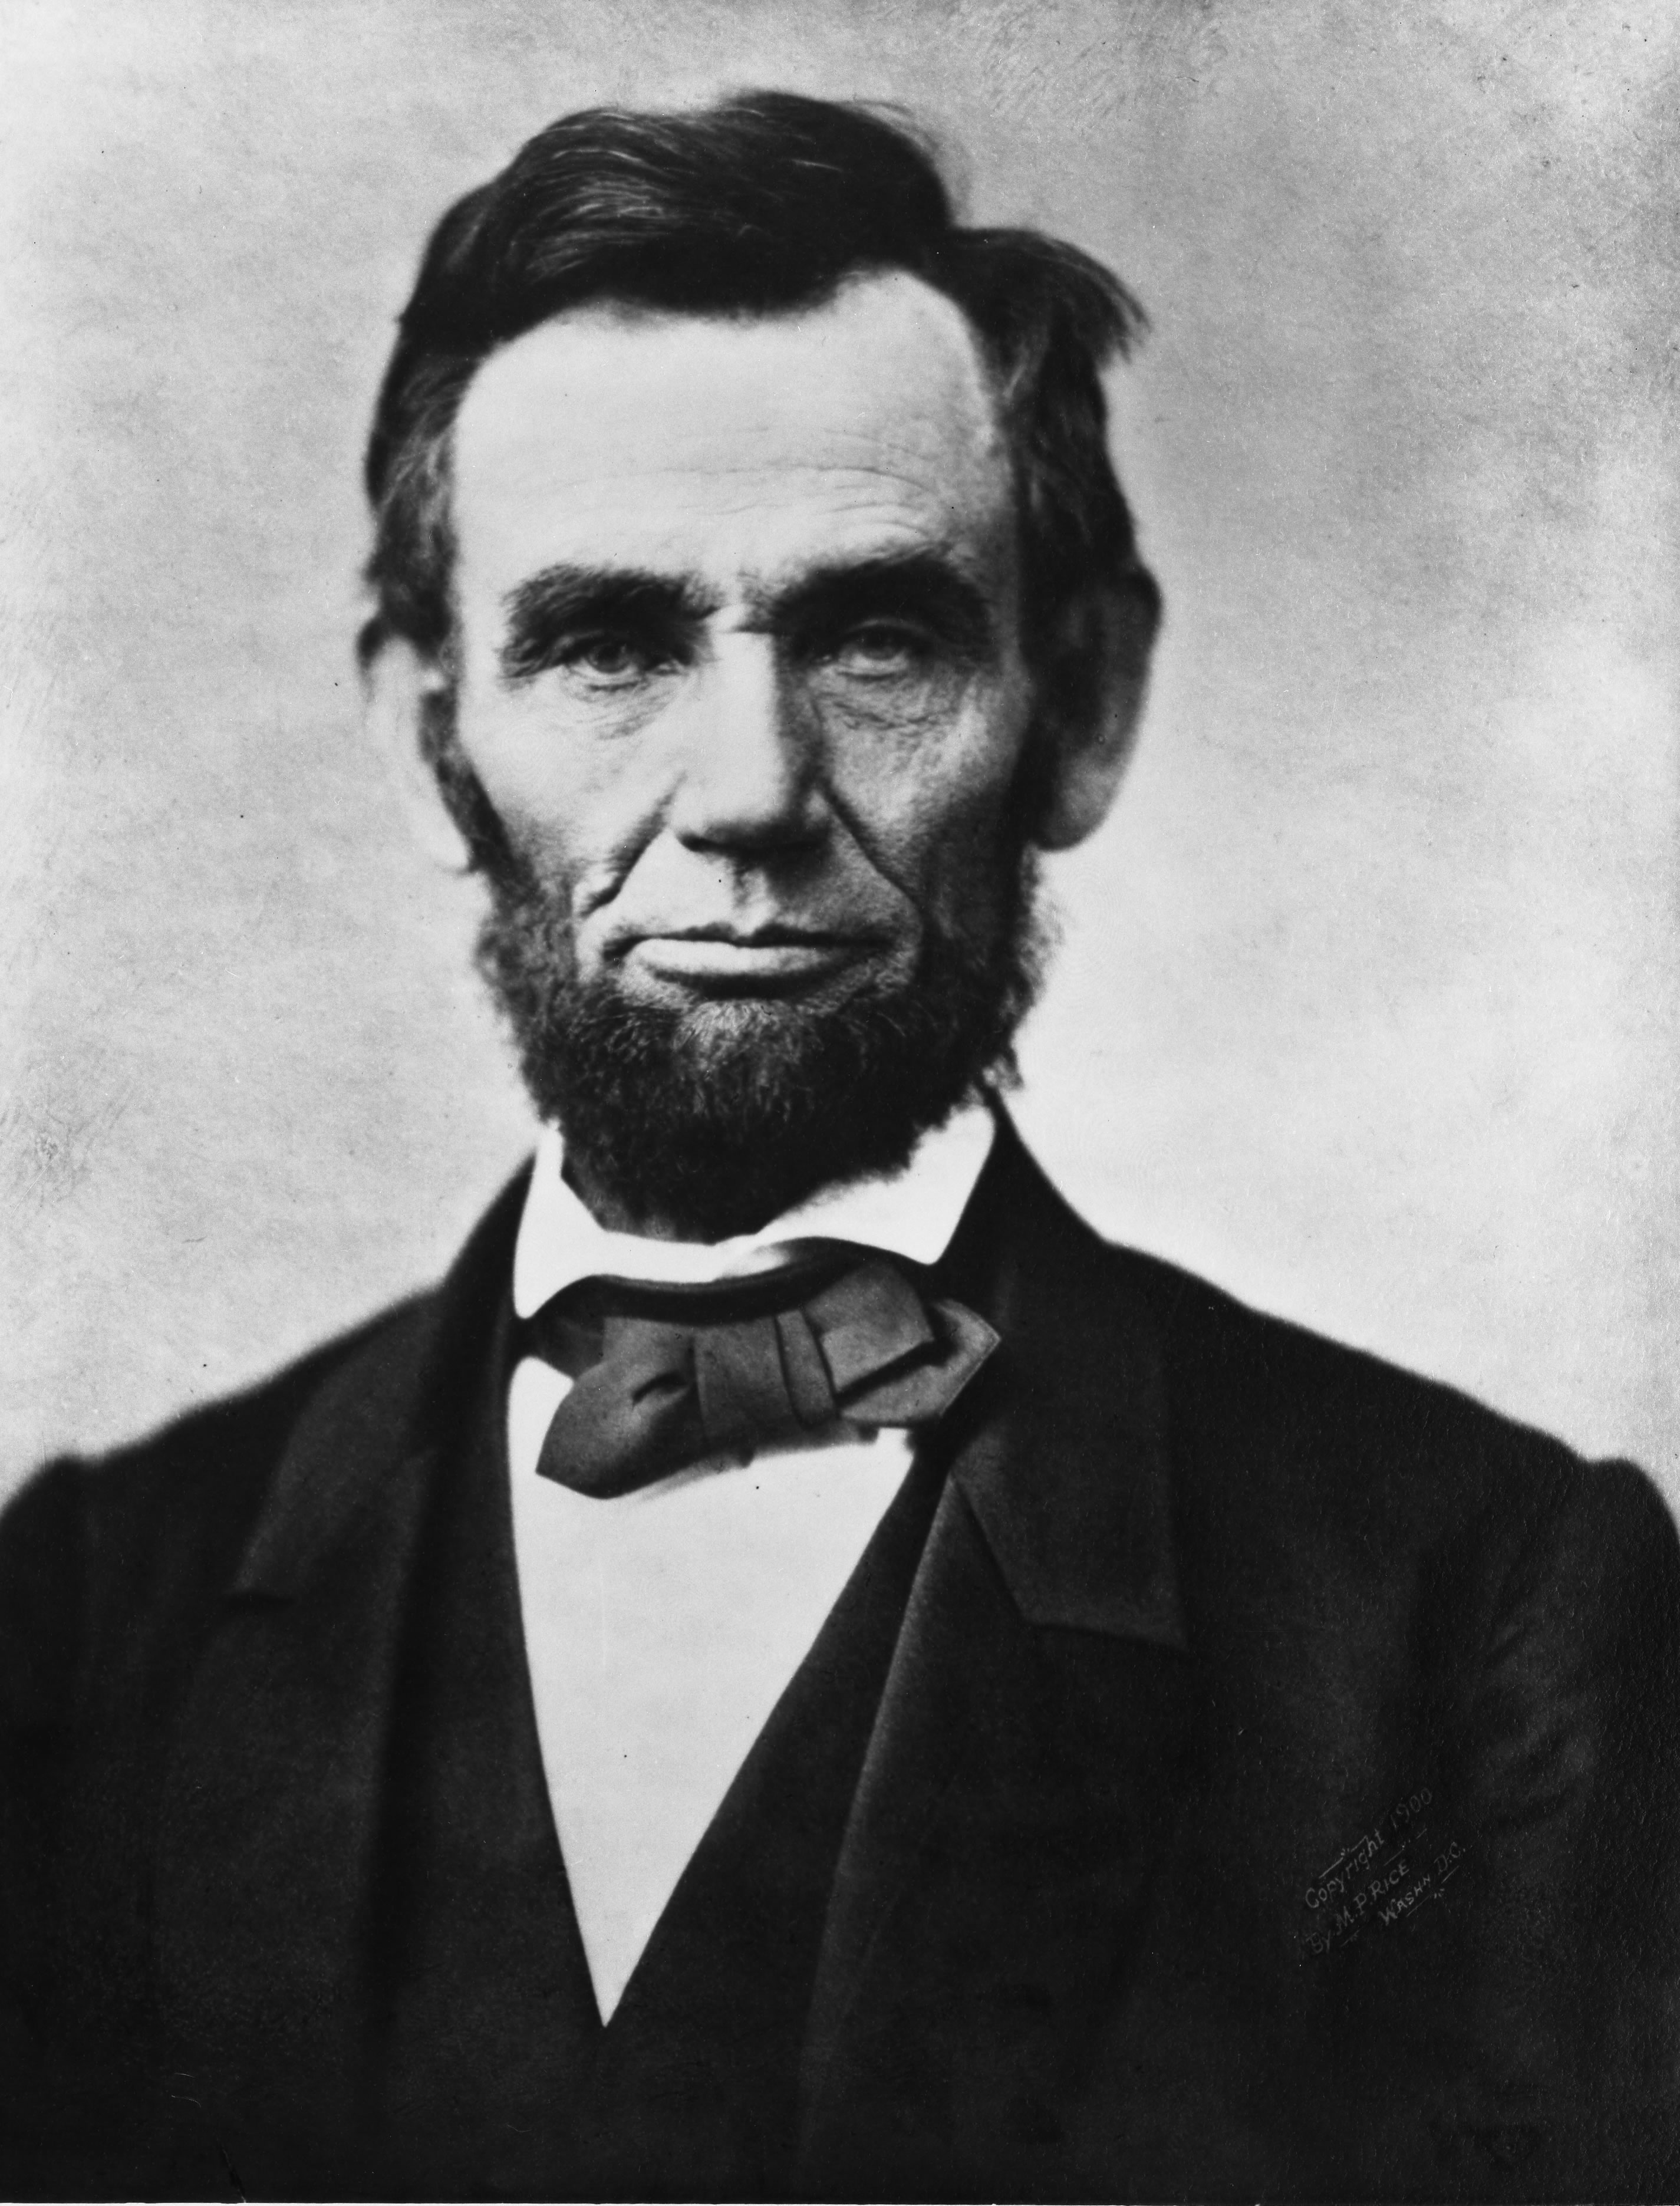 chief of staff resume%0A Abraham Lincoln  the   th President of the United States  successfully  preserved the Union during the American Civil War